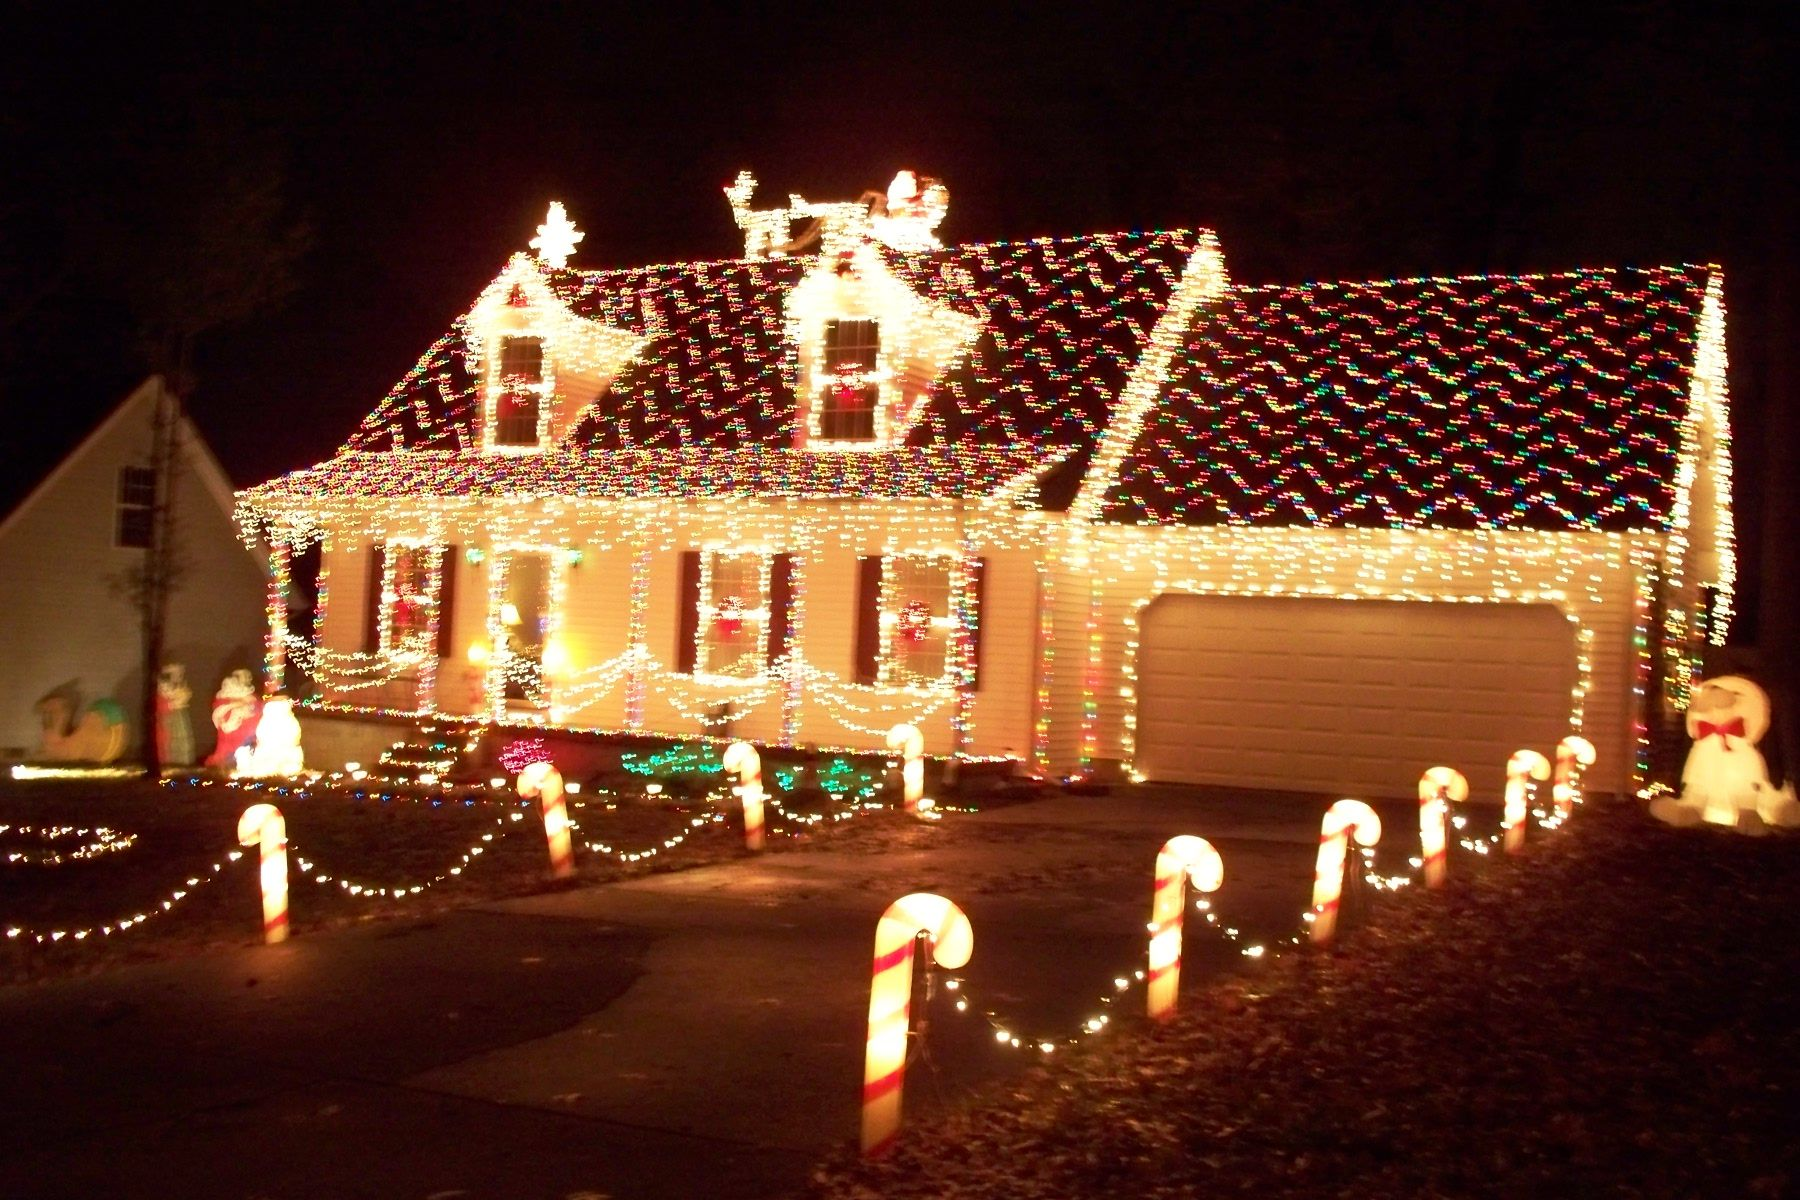 Best christmas light displays and decorations | where are, Which  neighborhoods in your area have